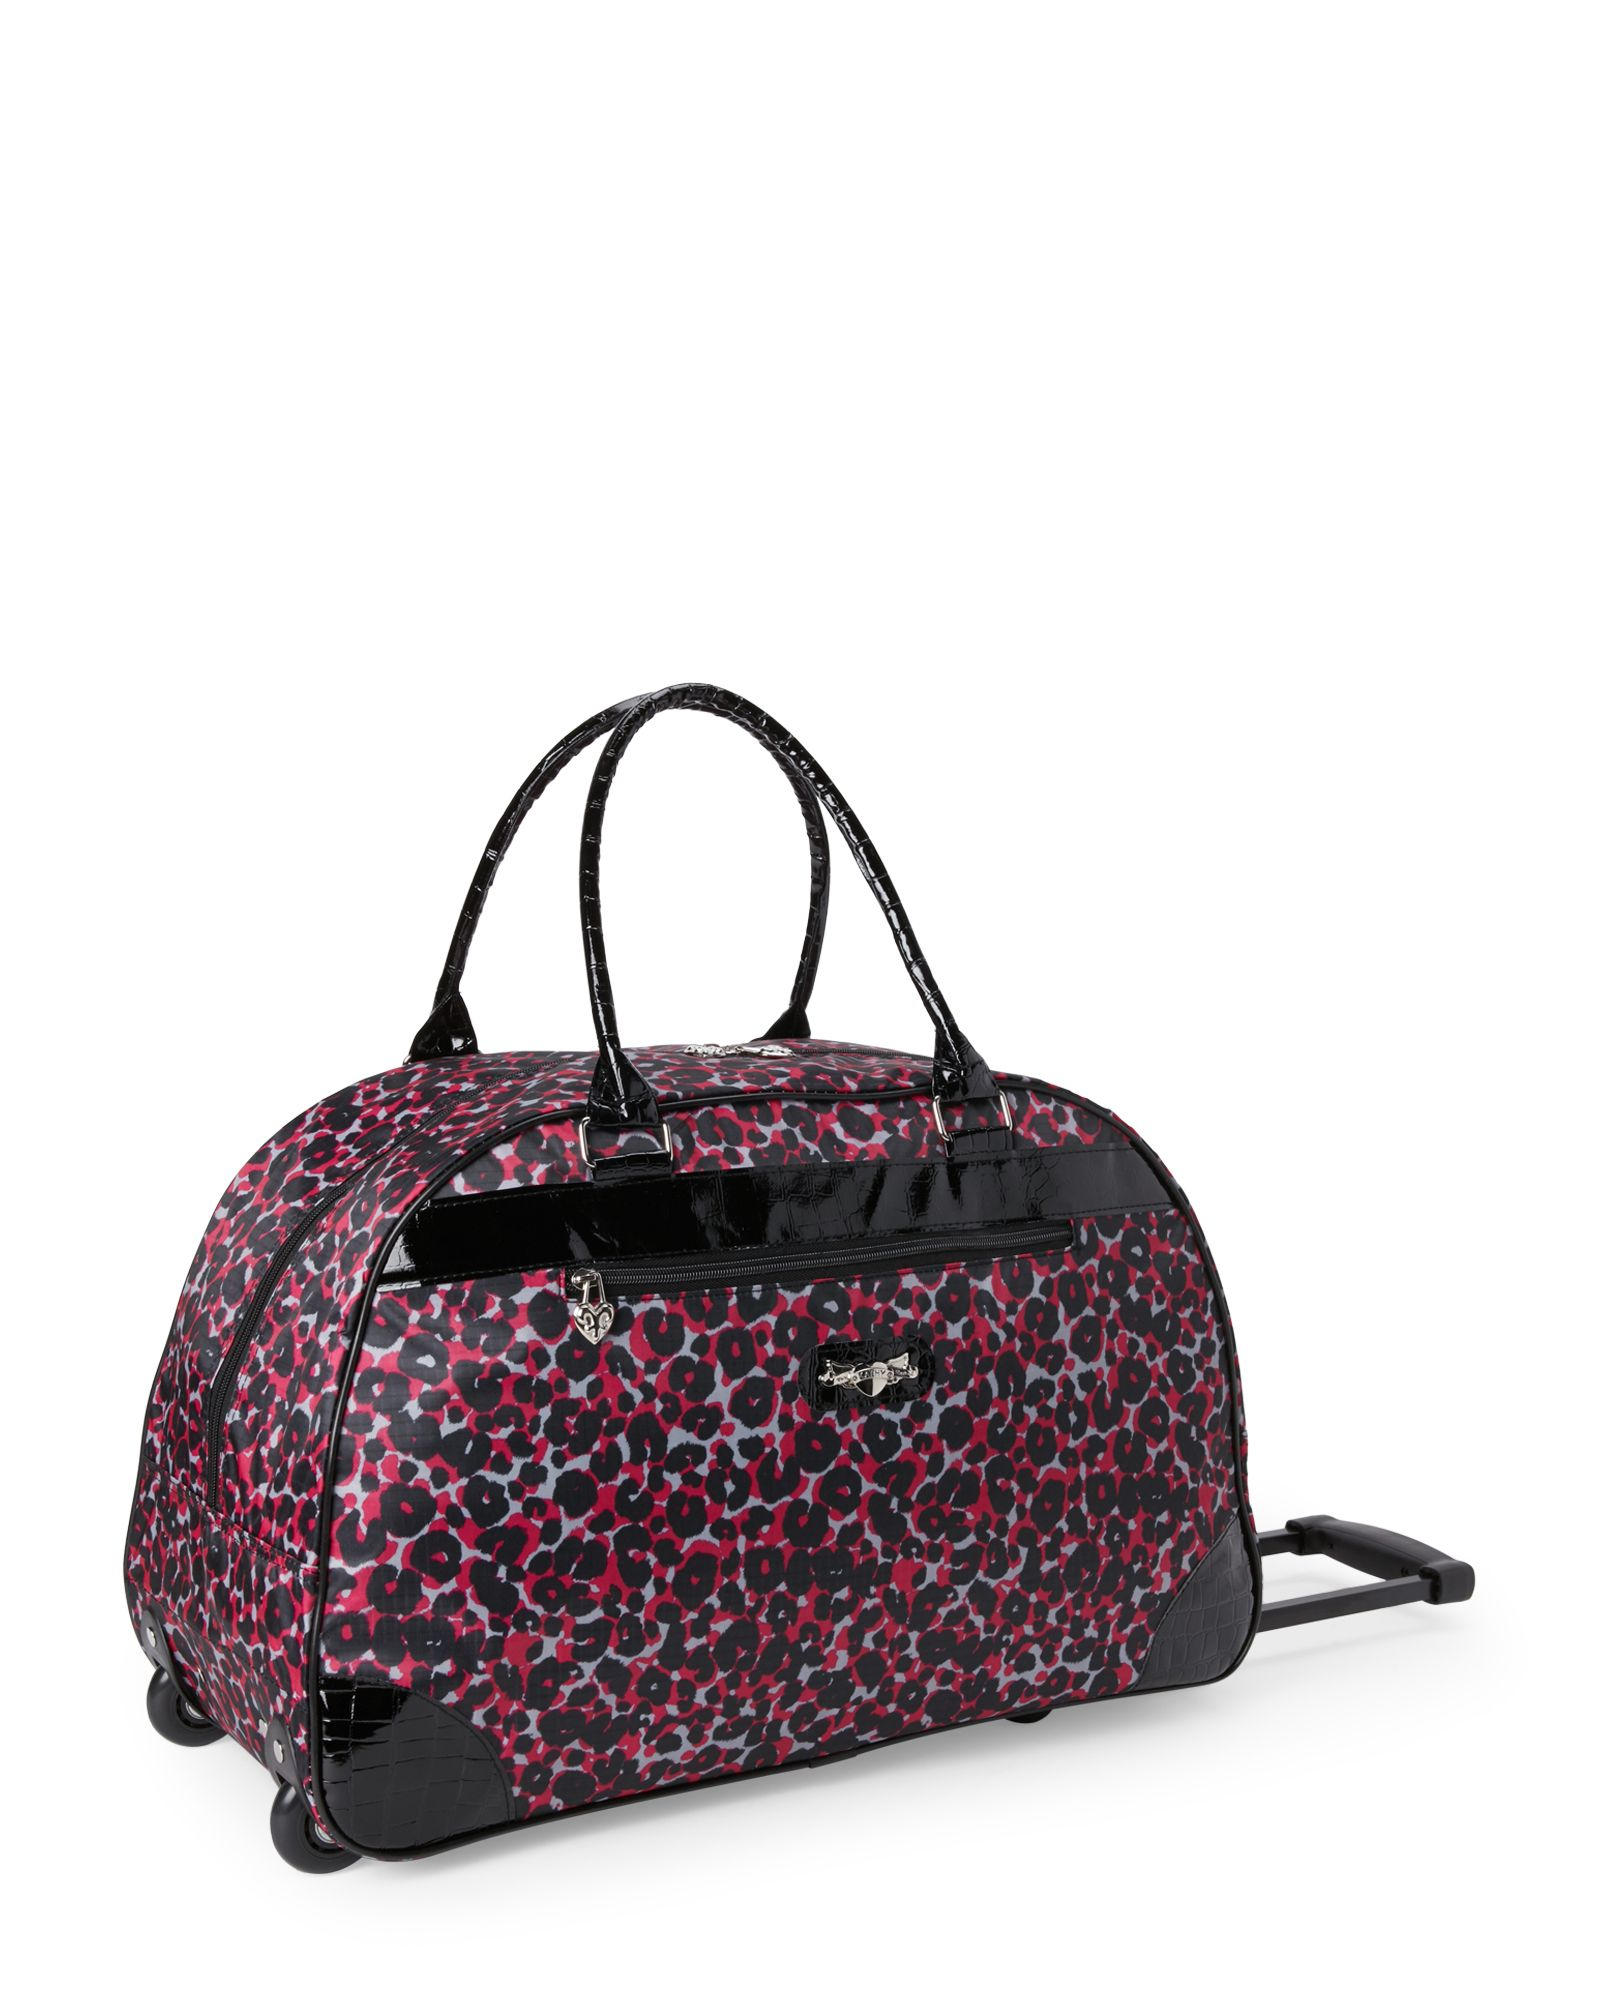 Kathy Van Zeeland Cheetah Weekend Roller Bag | *Luggage & Bags ...